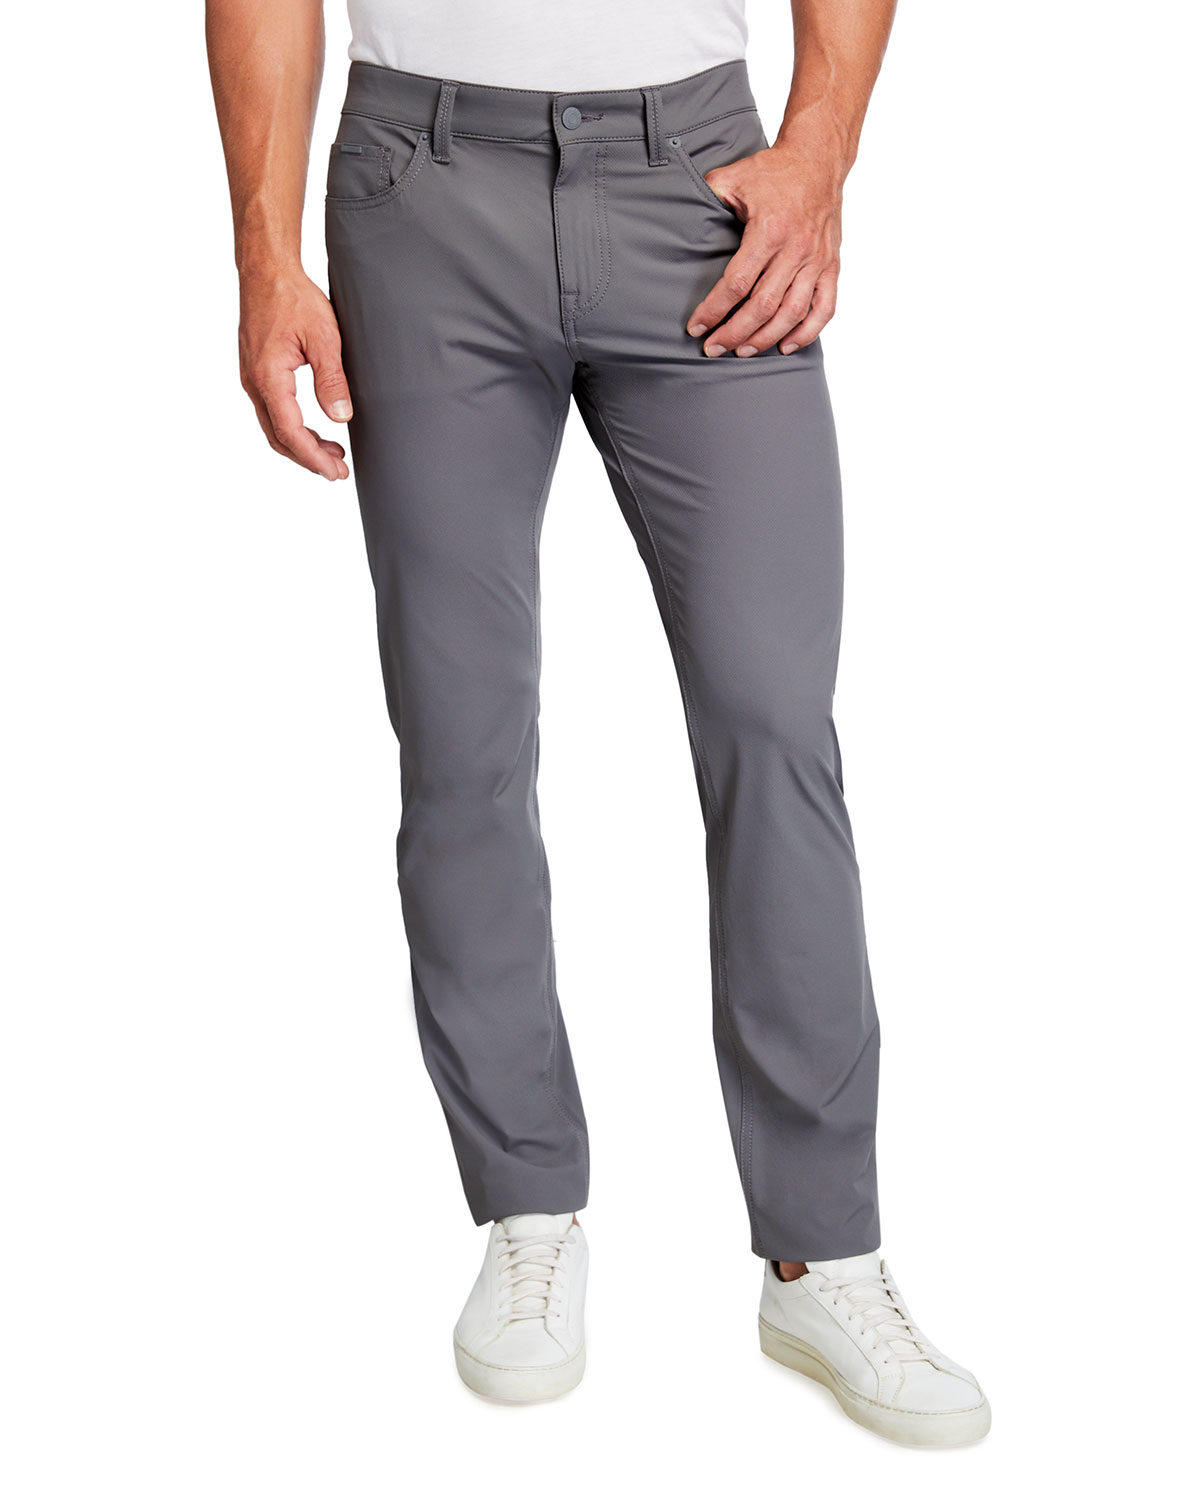 BOSS Men's Slim-Fit 5-Pocket Tech Pants